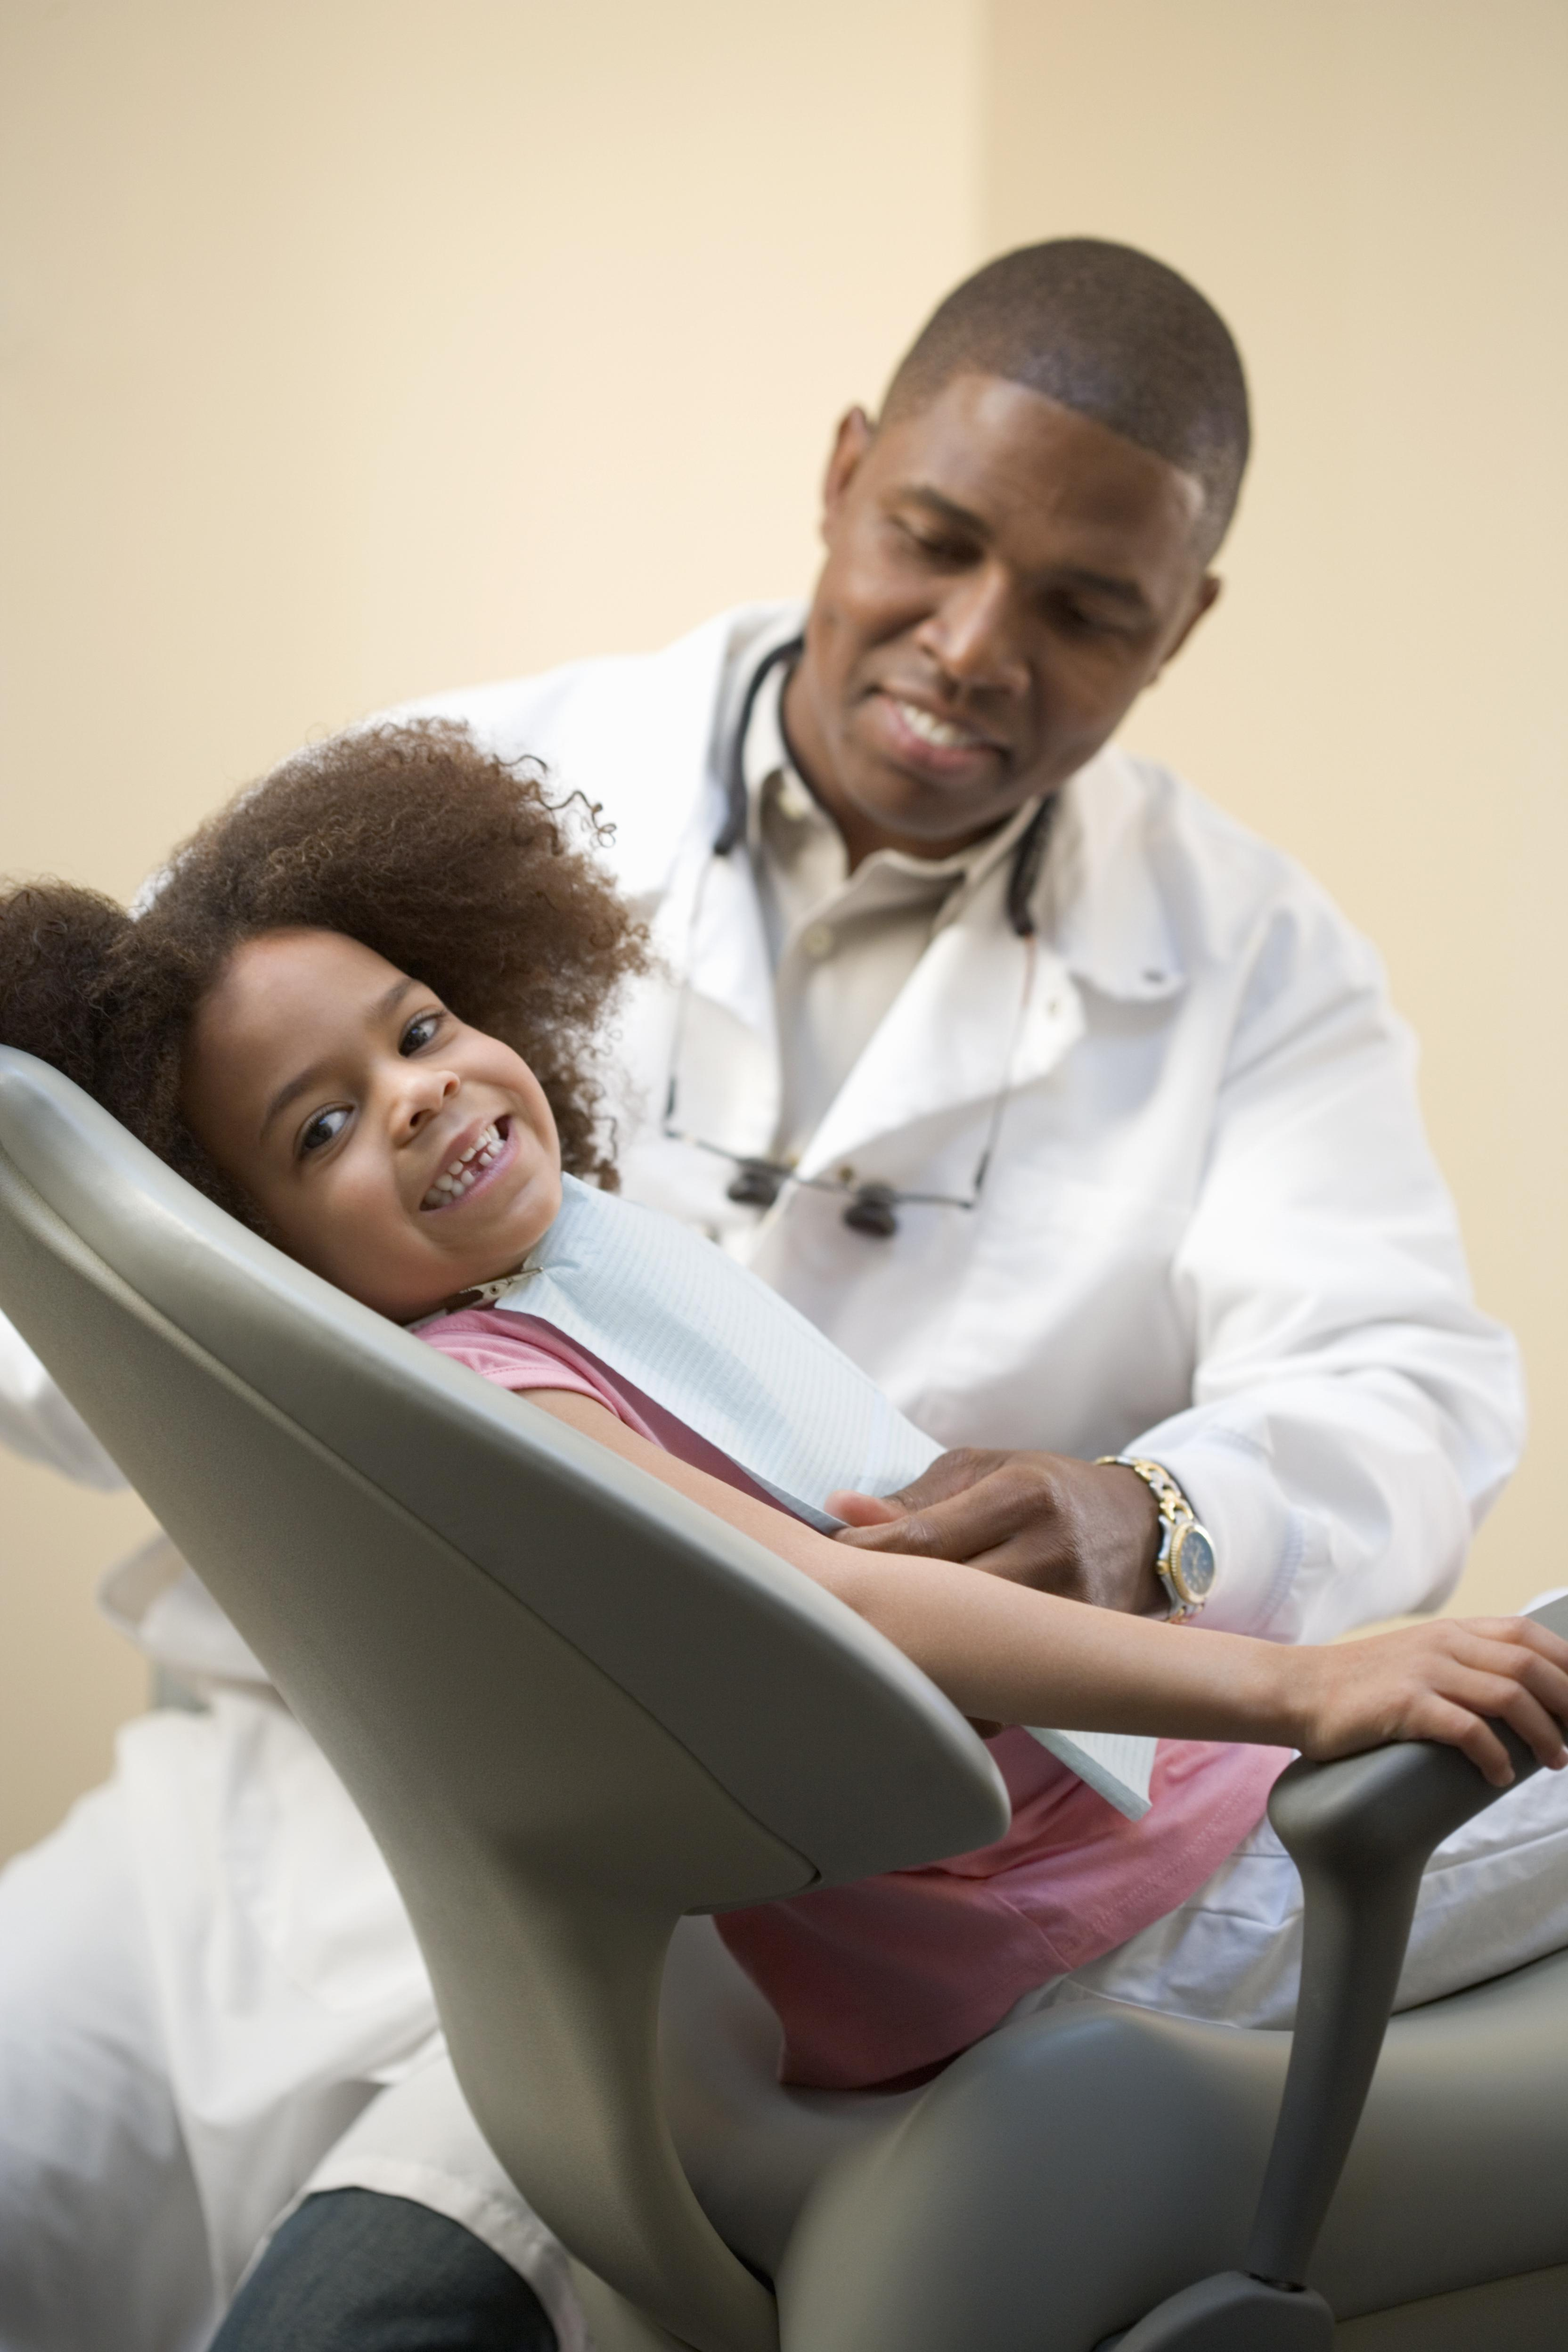 Girl (4-6) sitting in dental chair with dentist